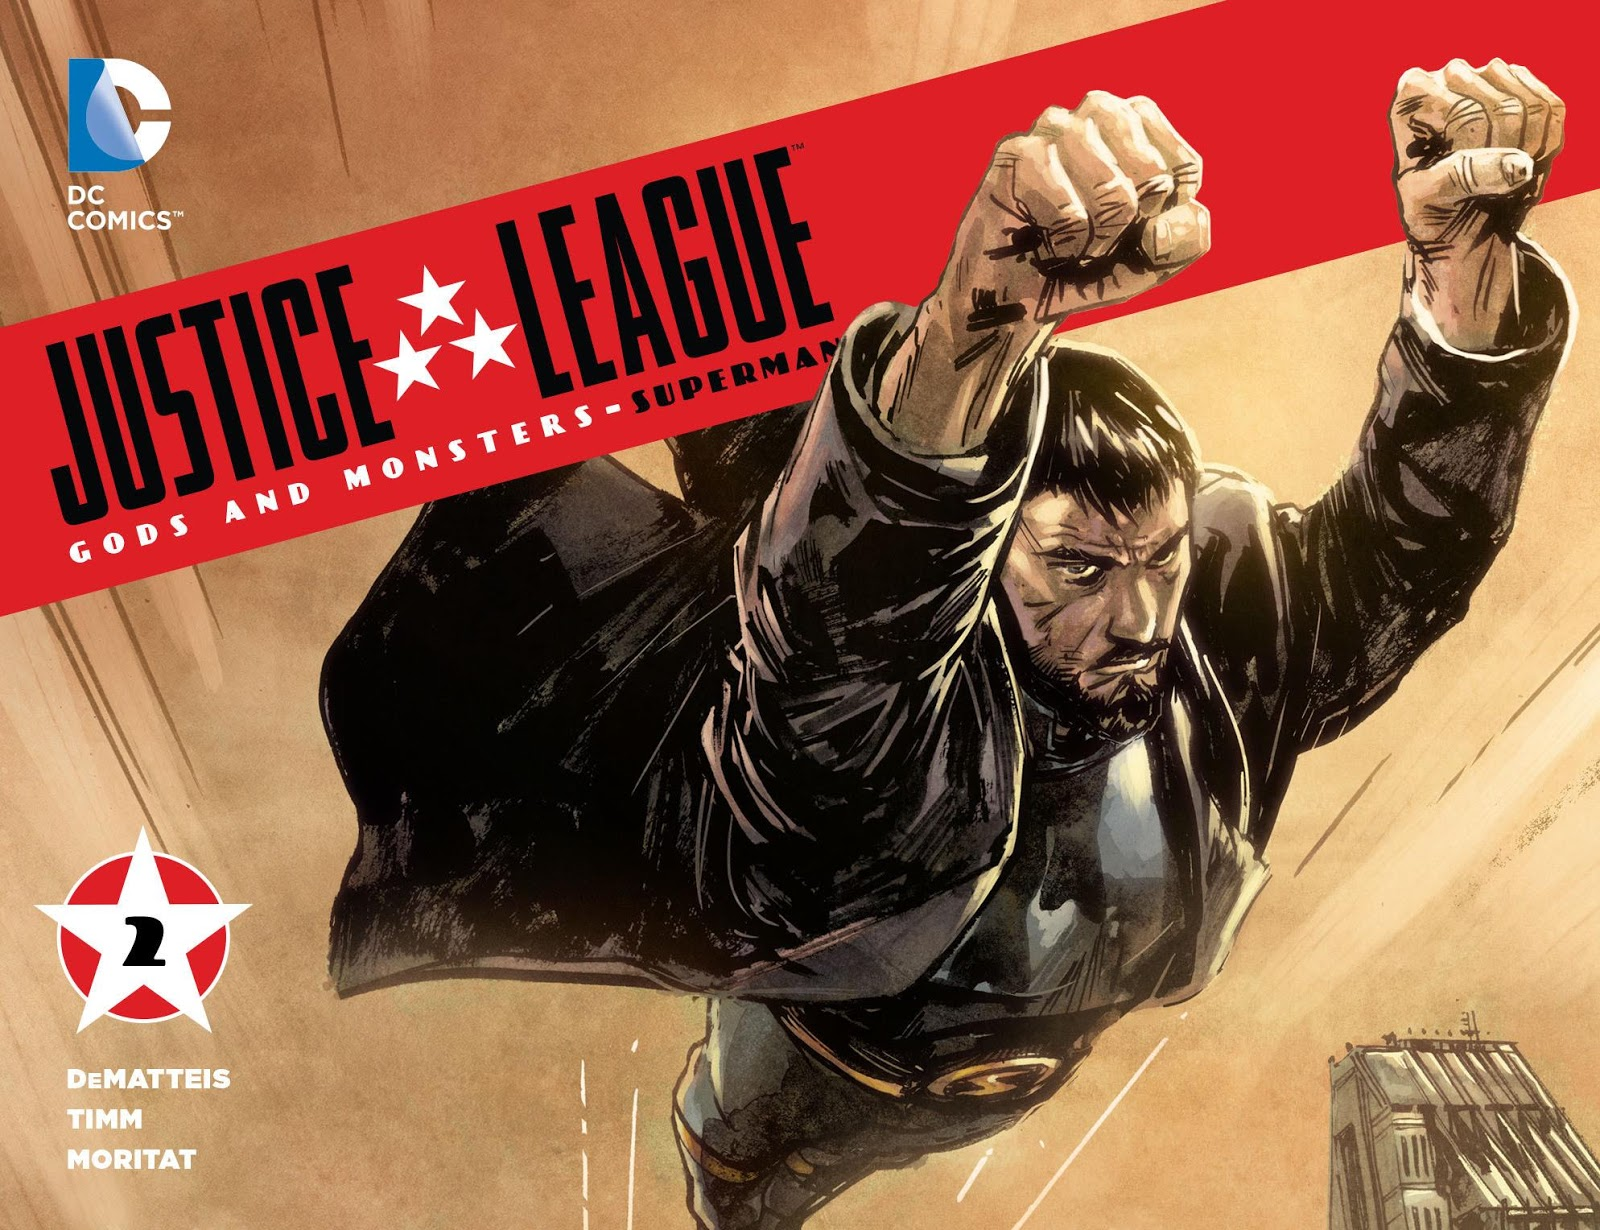 Weird Science DC Comics: Justice League: Gods and Monsters